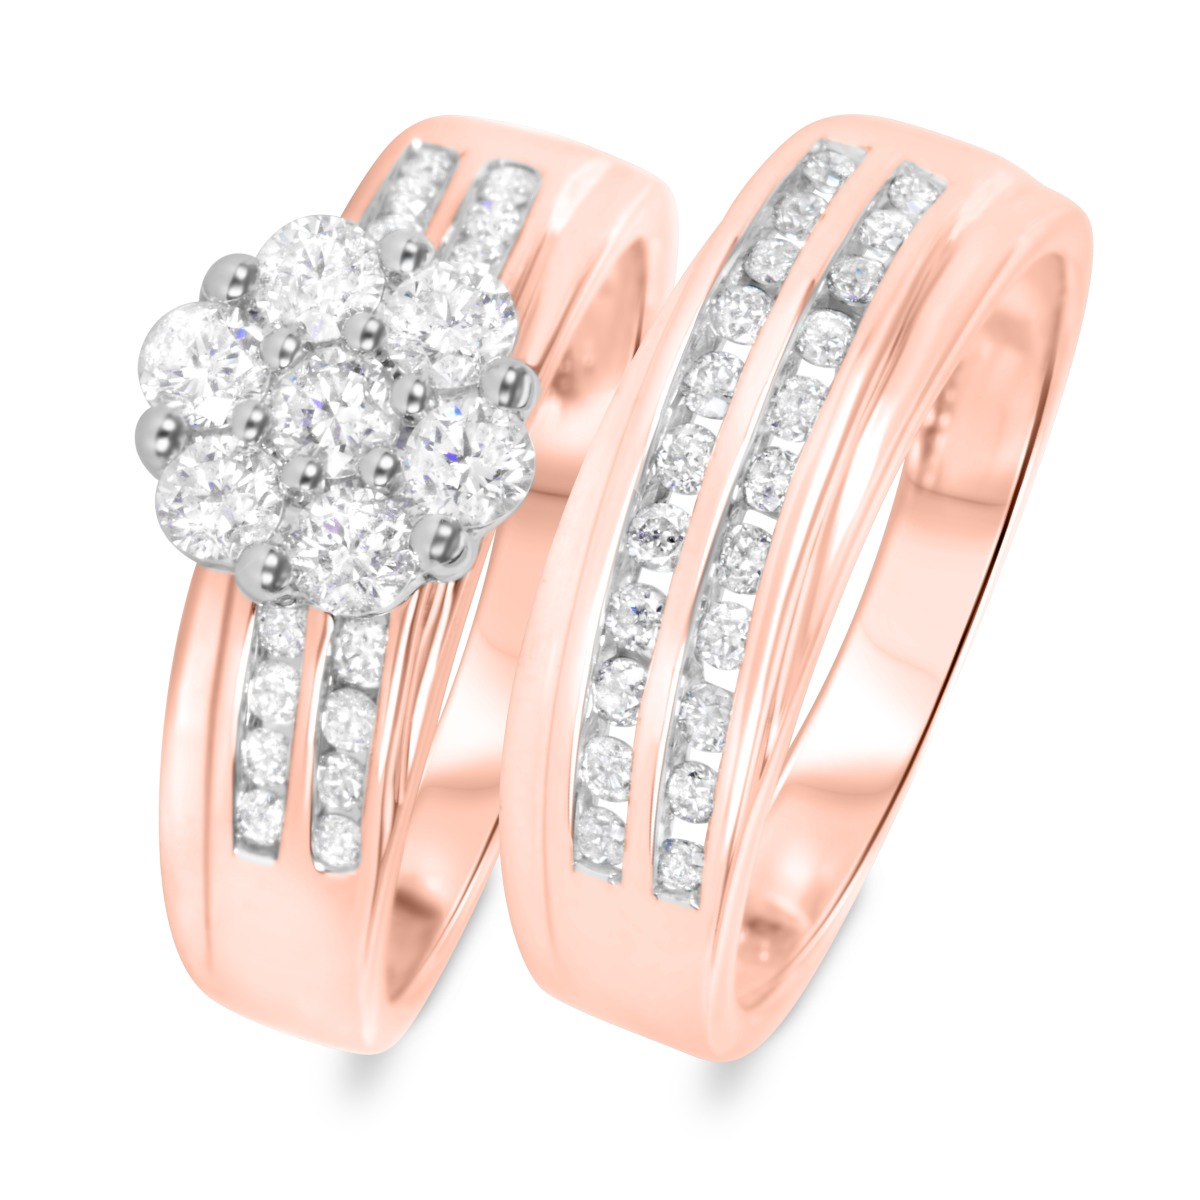 1 1/6 CT. T.W. Diamond Ladies' Bridal Wedding Ring Set 10K Rose Gold